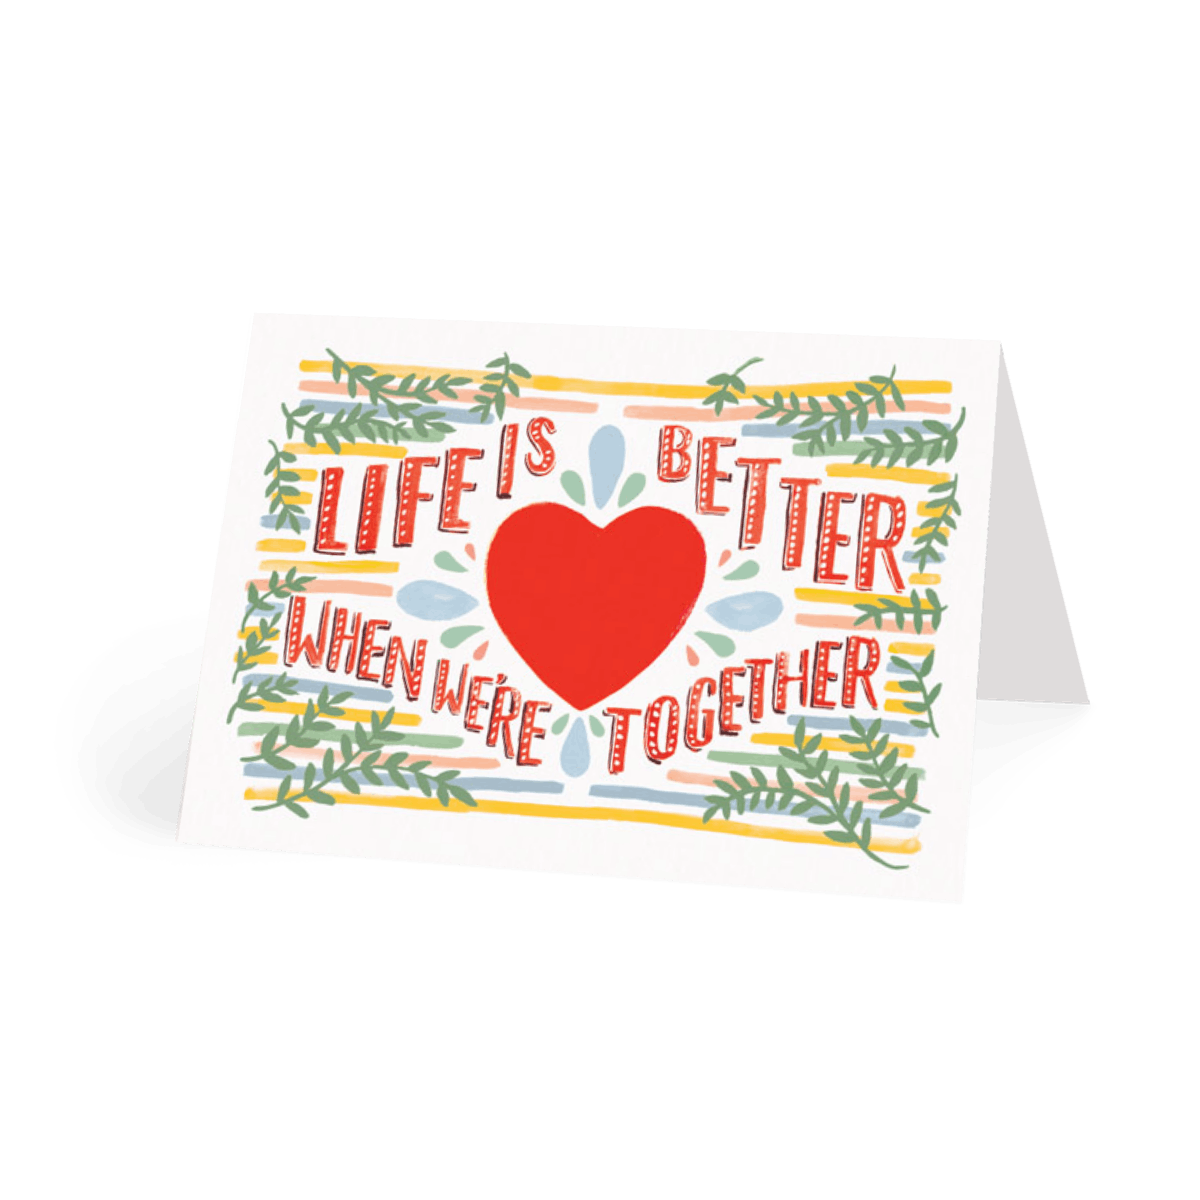 Https%3a%2f%2fwww.papier.com%2fproduct image%2f11177%2f14%2fwe re better together 2846 front 1474449120.png?ixlib=rb 1.1